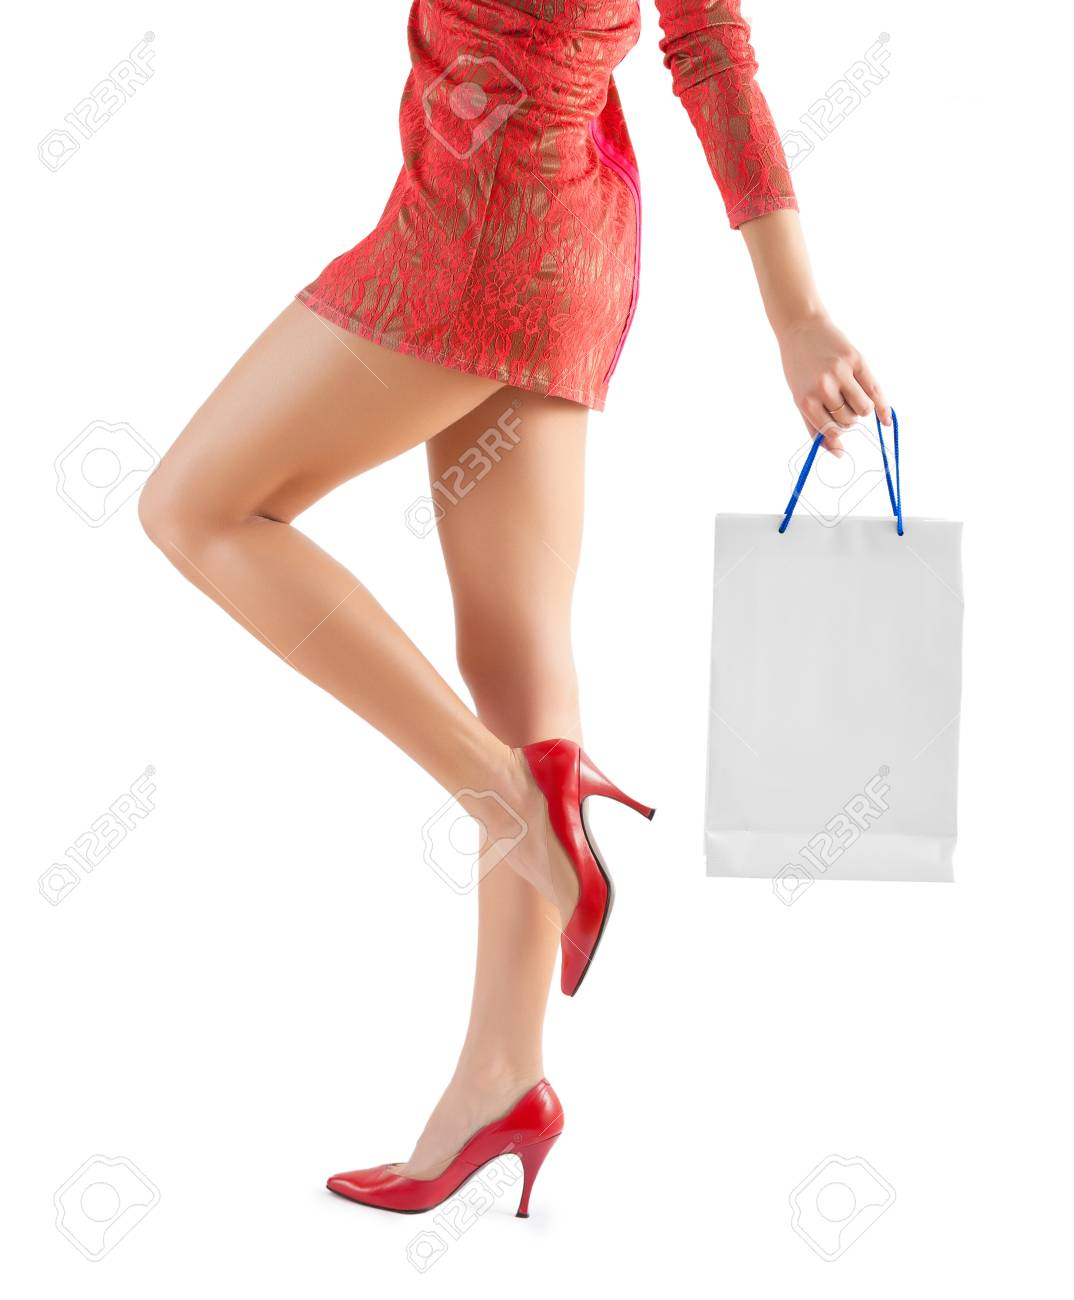 female holding paperbag very close up Stock Photo - 25274016